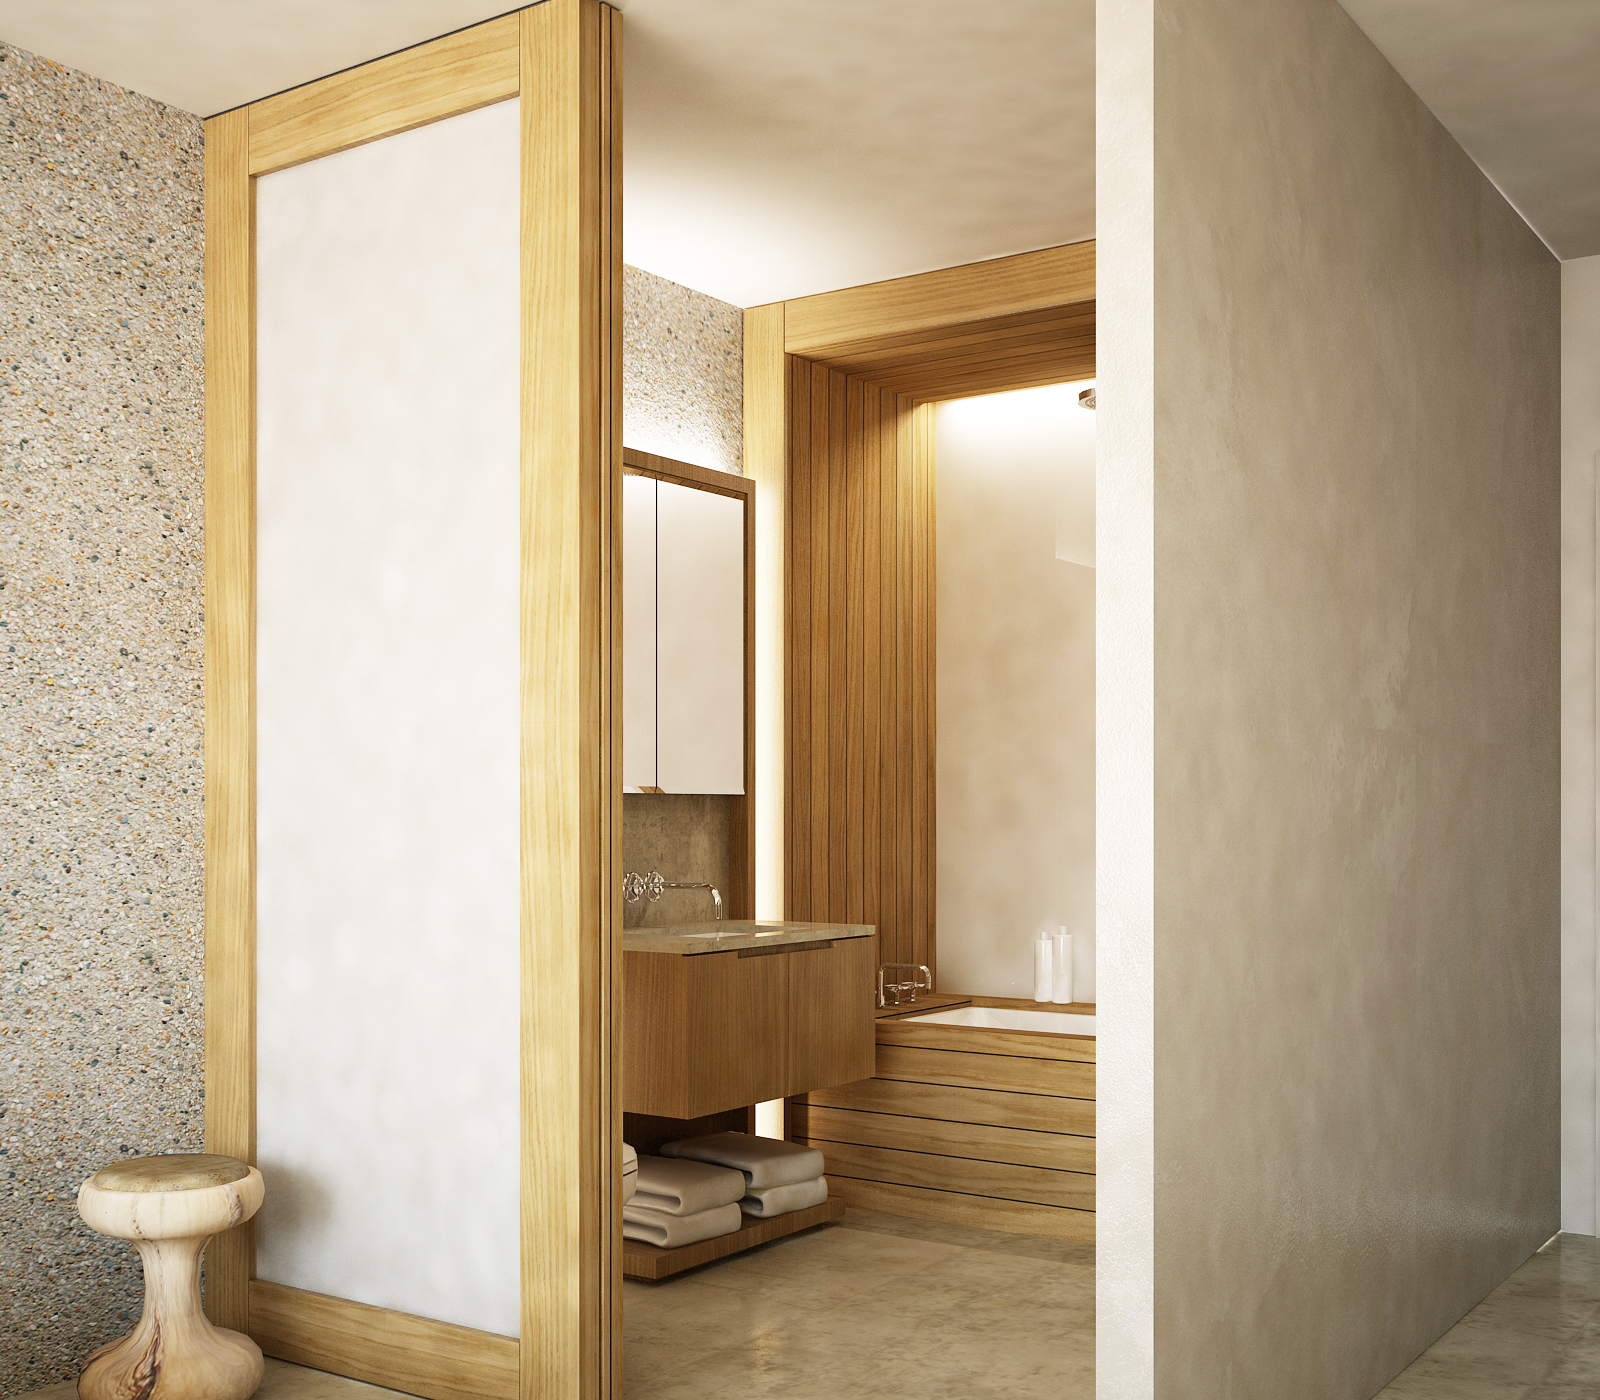 Sochi Olympic Village Master Bathroom Rendering